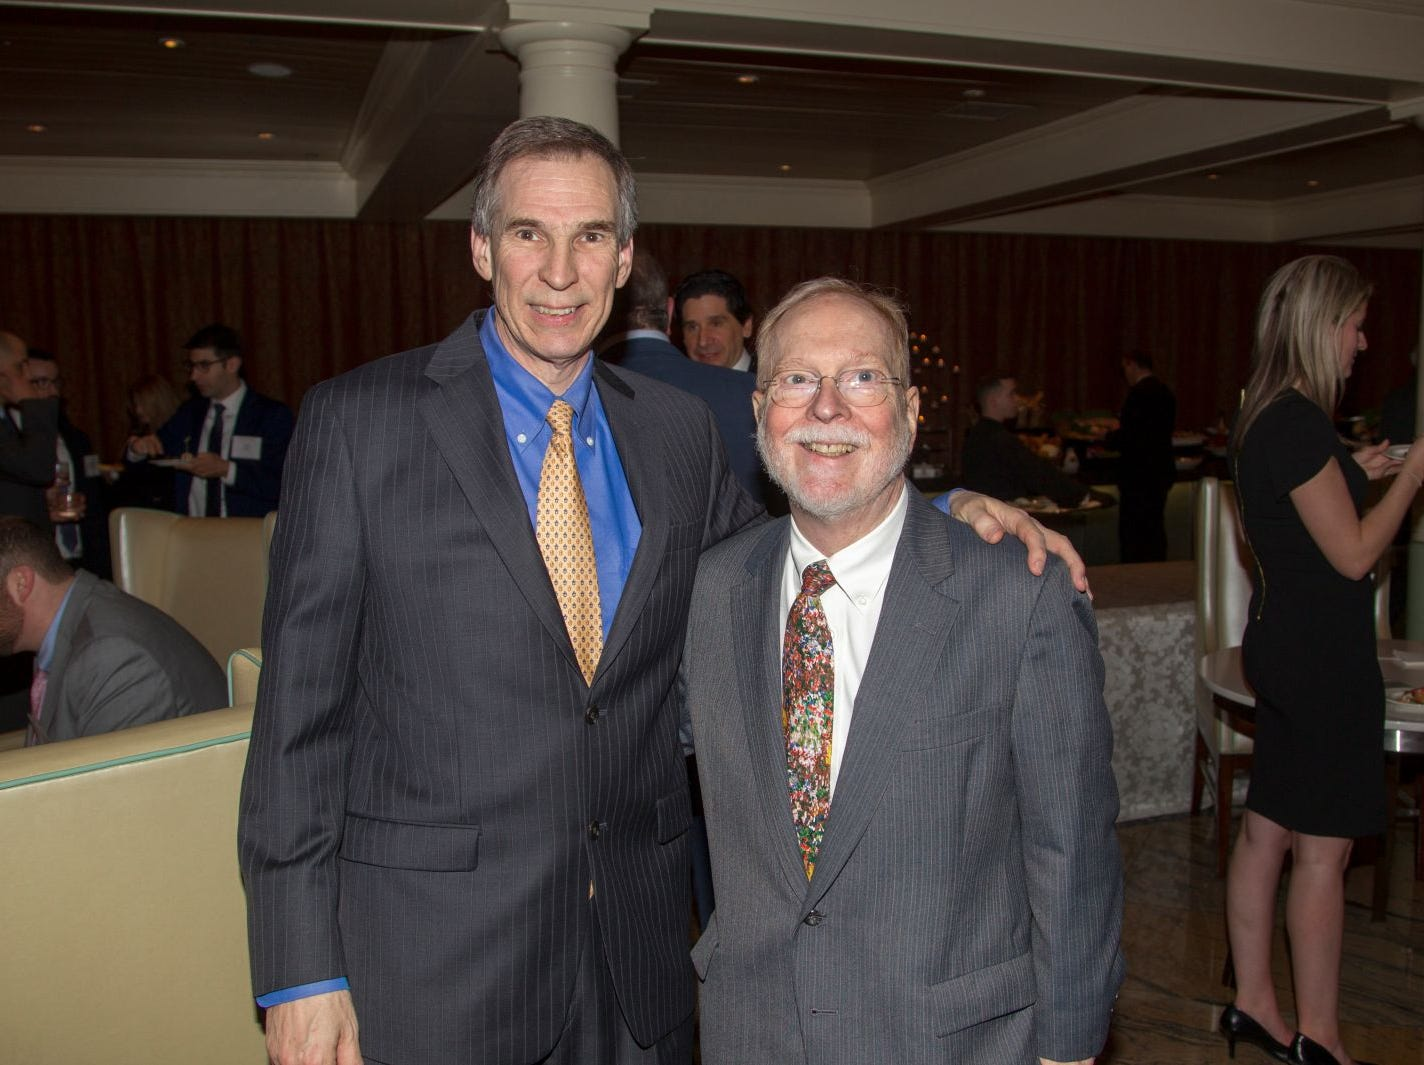 David Ritter, George Carnrick. Eva's Village hosted its second annual Lawyers, Accountants and Financial Professionals Benefit Dinner at Westmount Country Club in Woodland Park. 02/21/2019